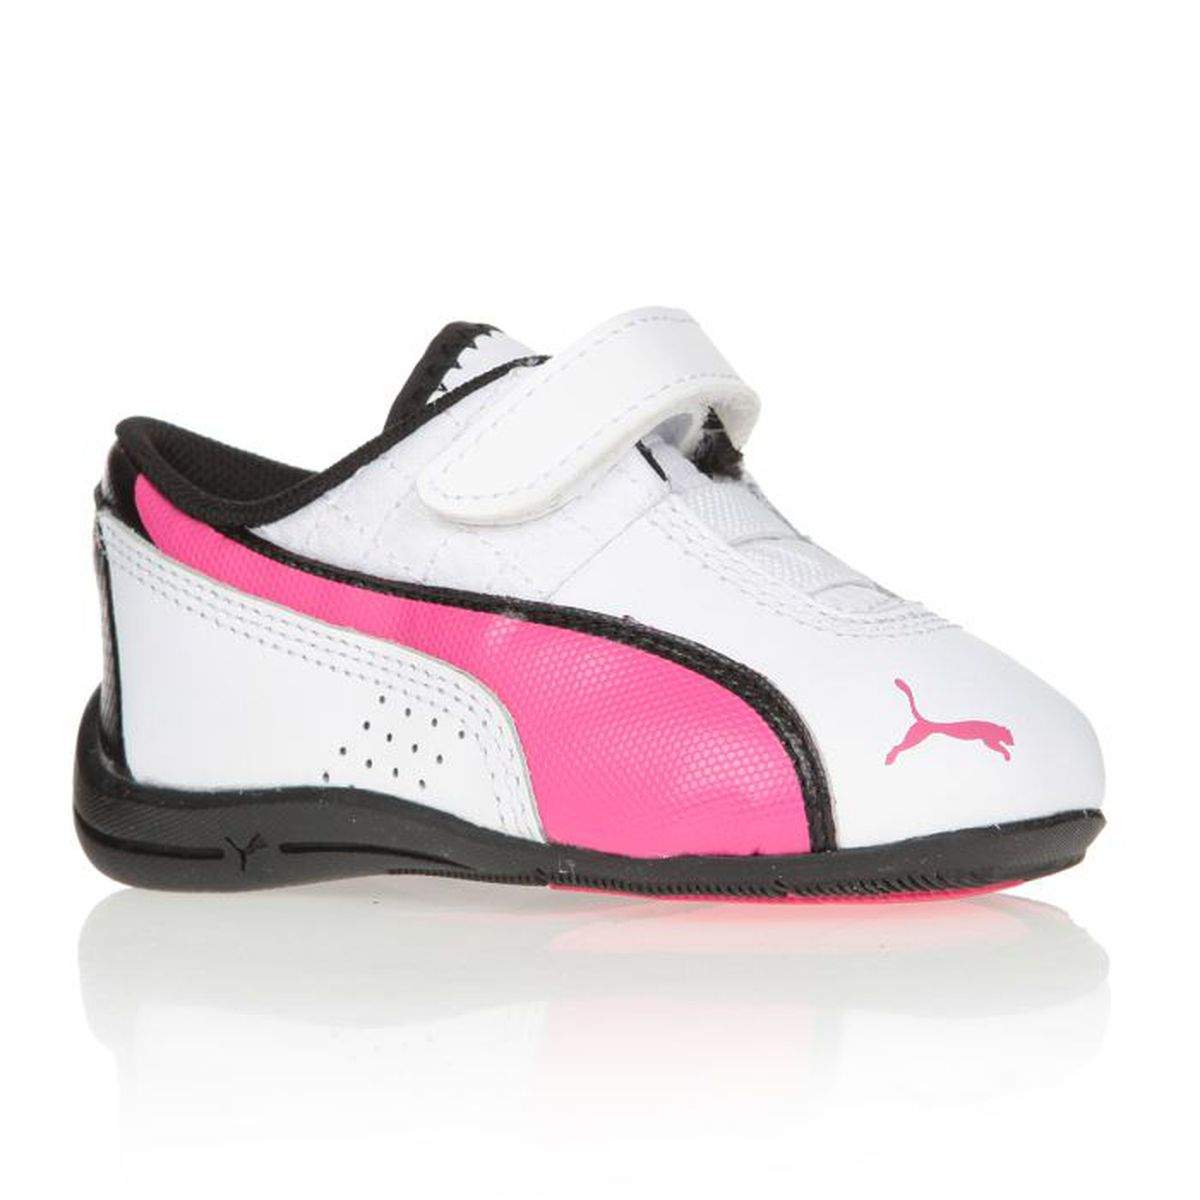 puma baskets drift cat chaussures enfant fille blanc et rose achat vente basket cdiscount. Black Bedroom Furniture Sets. Home Design Ideas